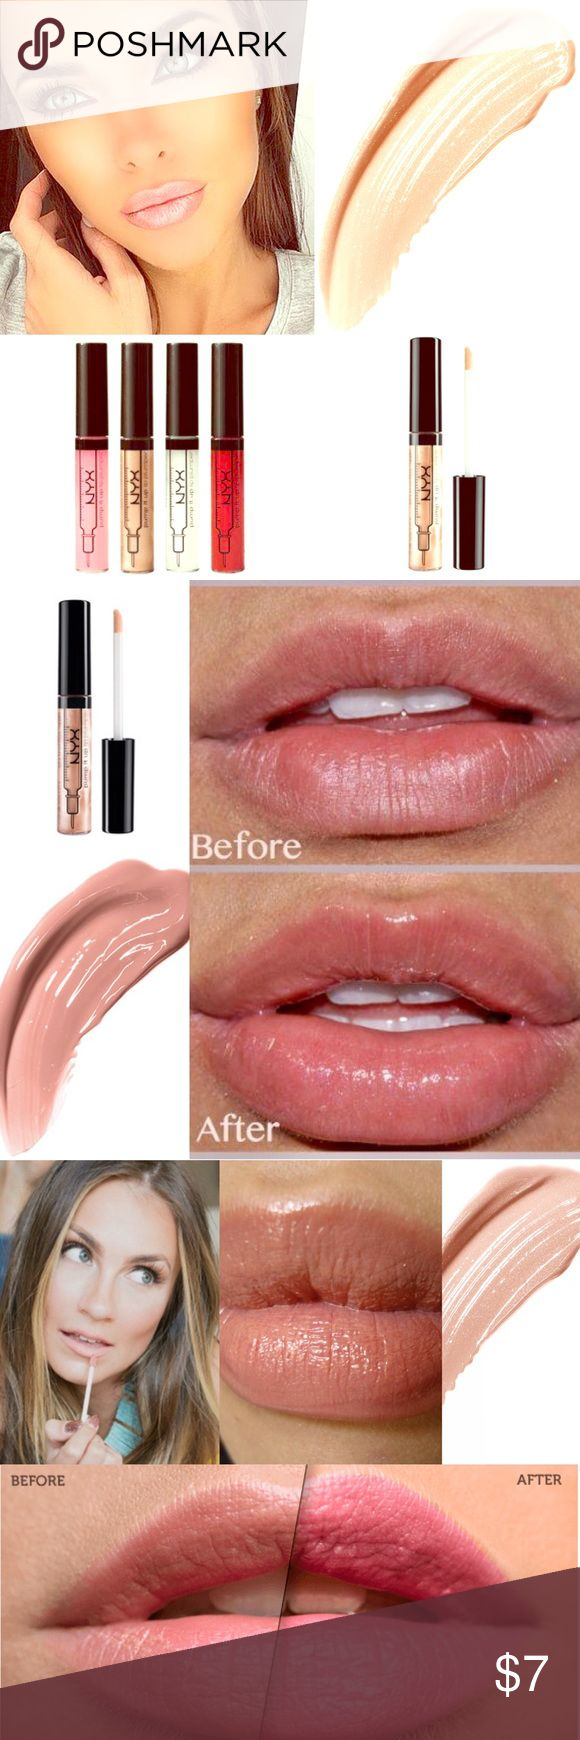 🔅NYX Lip Plumper in *Angela*🔅W/FREE GIFTS!🎁😍 🔅BRAND NEW & UNOPENED🔅NYX PUMP IT UP LIP PLUMPER🔅*Angela*🔅EXPEDITED SHIPPING🔅Plump ur pout to its FULLEST, flirtiest, most *FABULOUS* shape & size w/ this NEW shimmering Pump it up *LIP PLUMPER* formulated w/ maxi lip! Maxi lip is a special peptide that's infused in this new formula! Peptides are well known to improve collagen synthesis leading to firmer, *FULLER* looking lips! Go ahead- pout about it🔅INCLUDES SUPER CUTE FREE GIFTS🔅PICK…